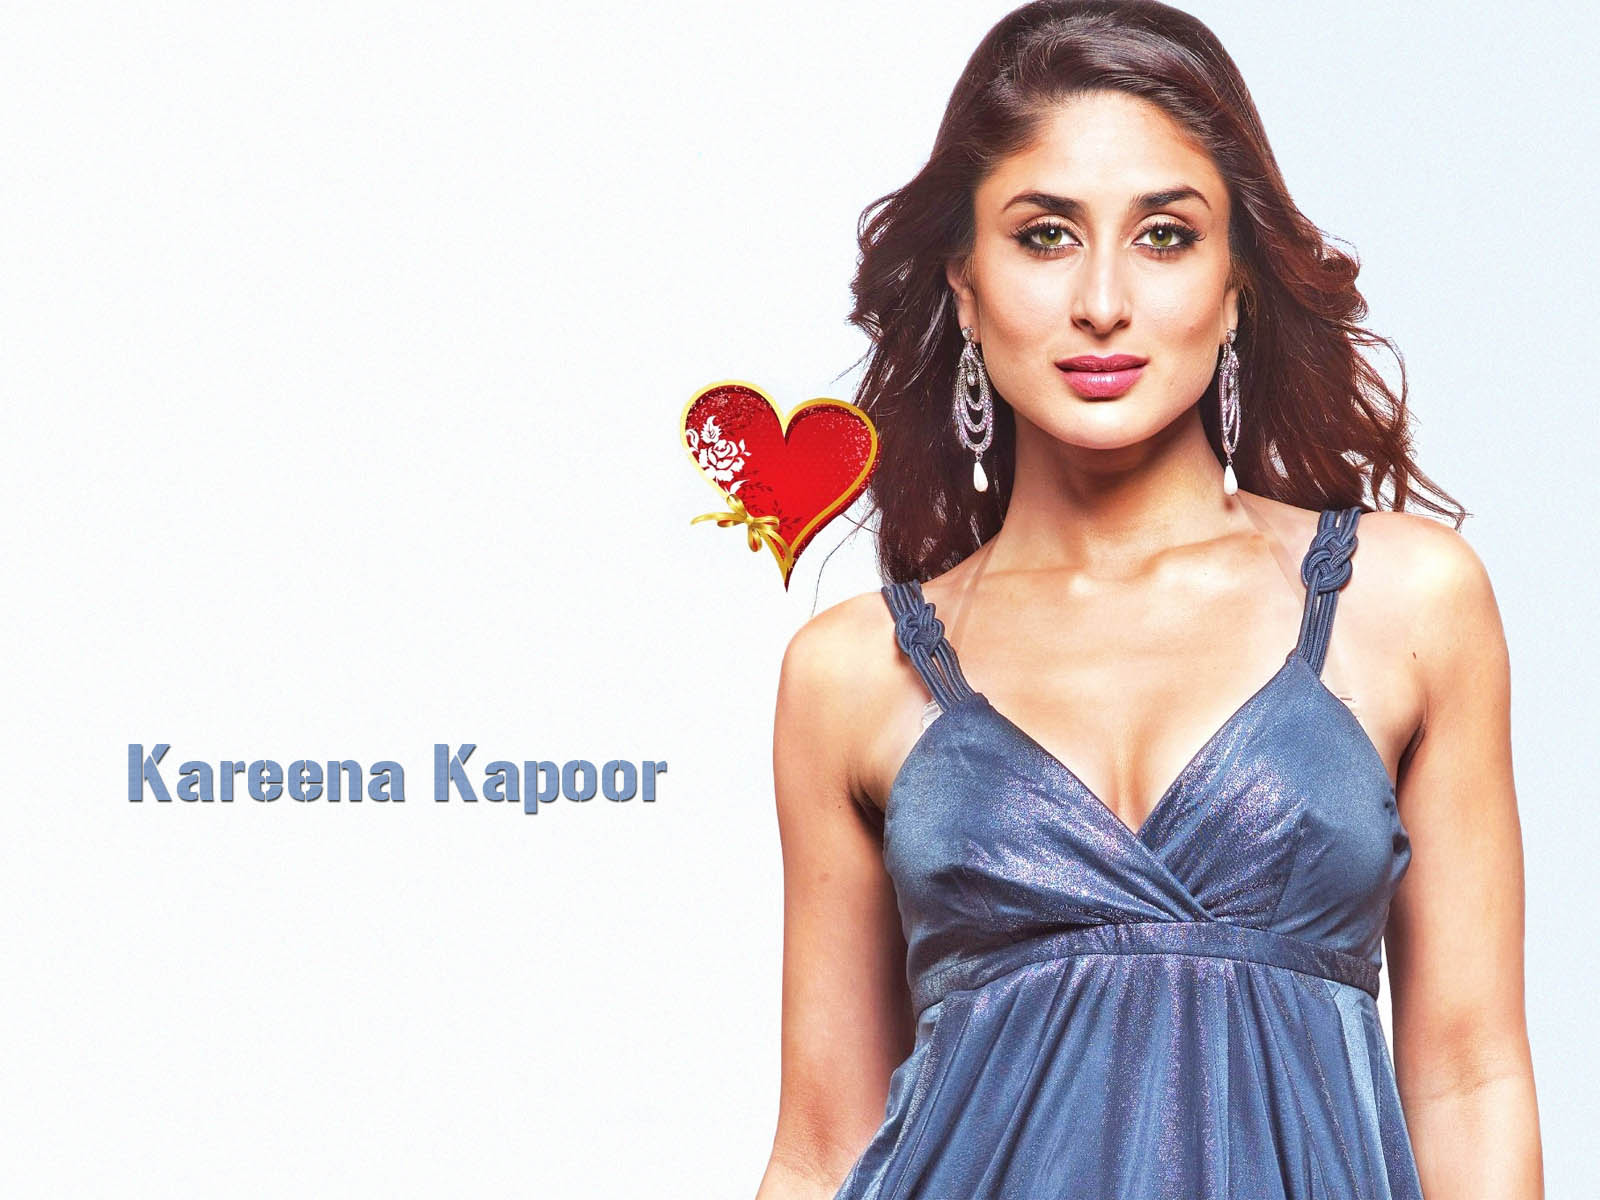 Download Latest Wallpapers of Kareena Kapoor Wallpaper HD FREE 1600x1200